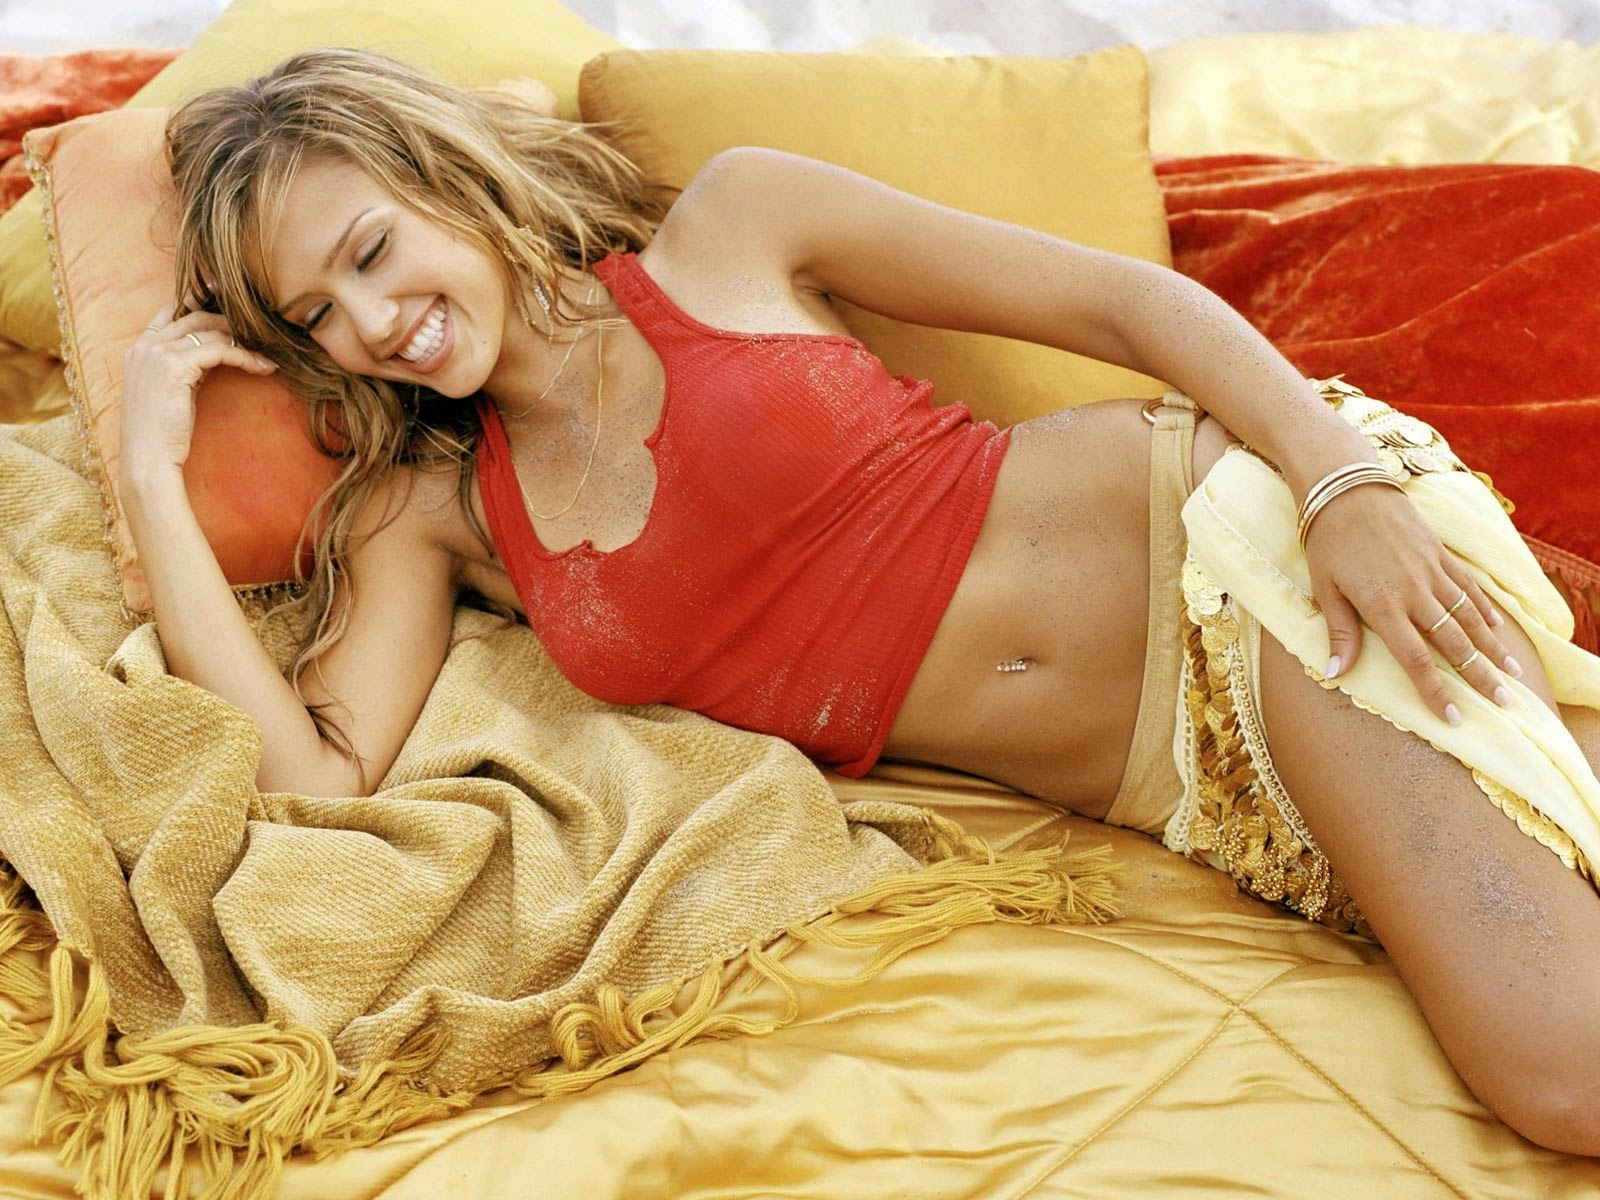 Jessica alba sweet dreams sleeping images